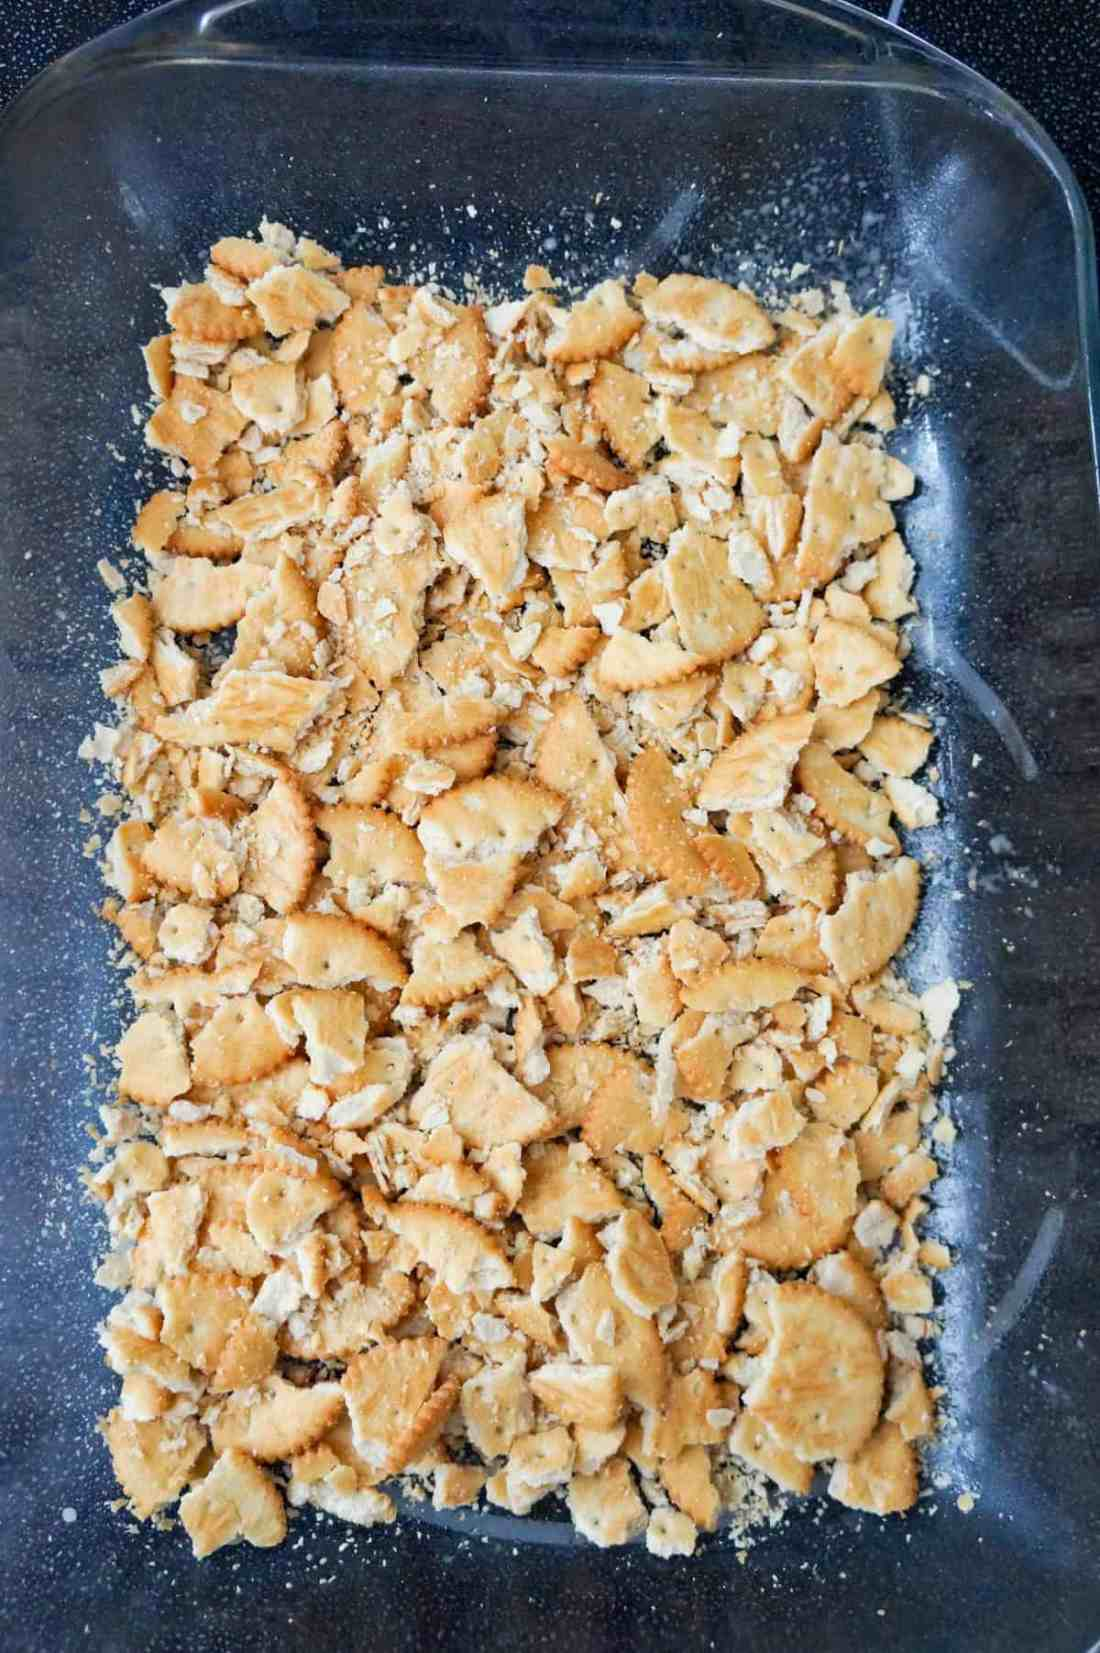 crumbled Ritz crackers in the bottom of a baking dish